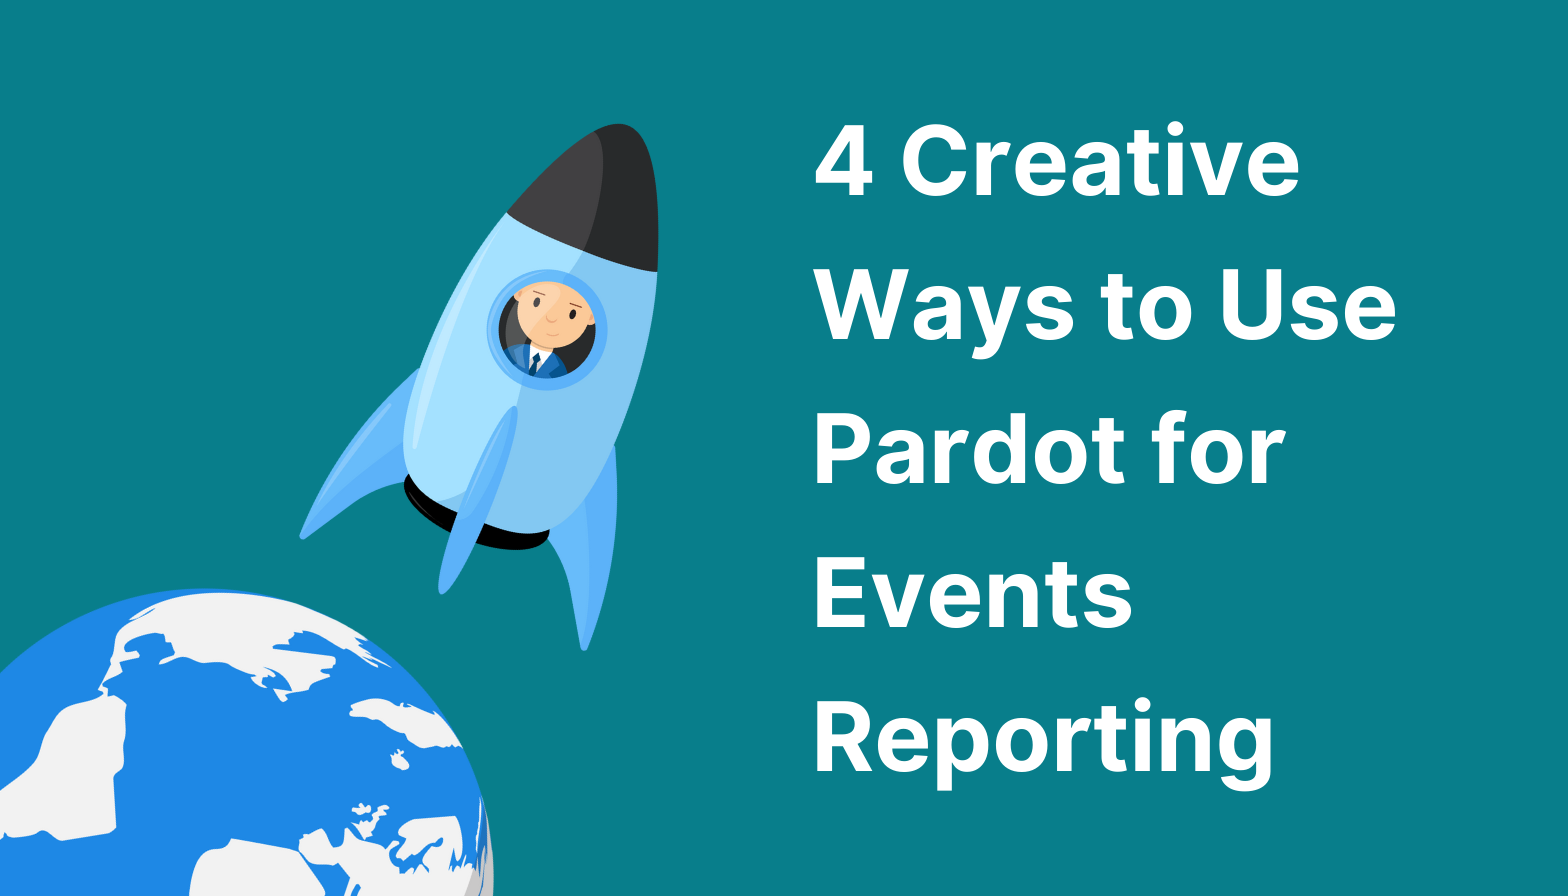 Feature image: 4 creative ways to use Pardot for events reporting